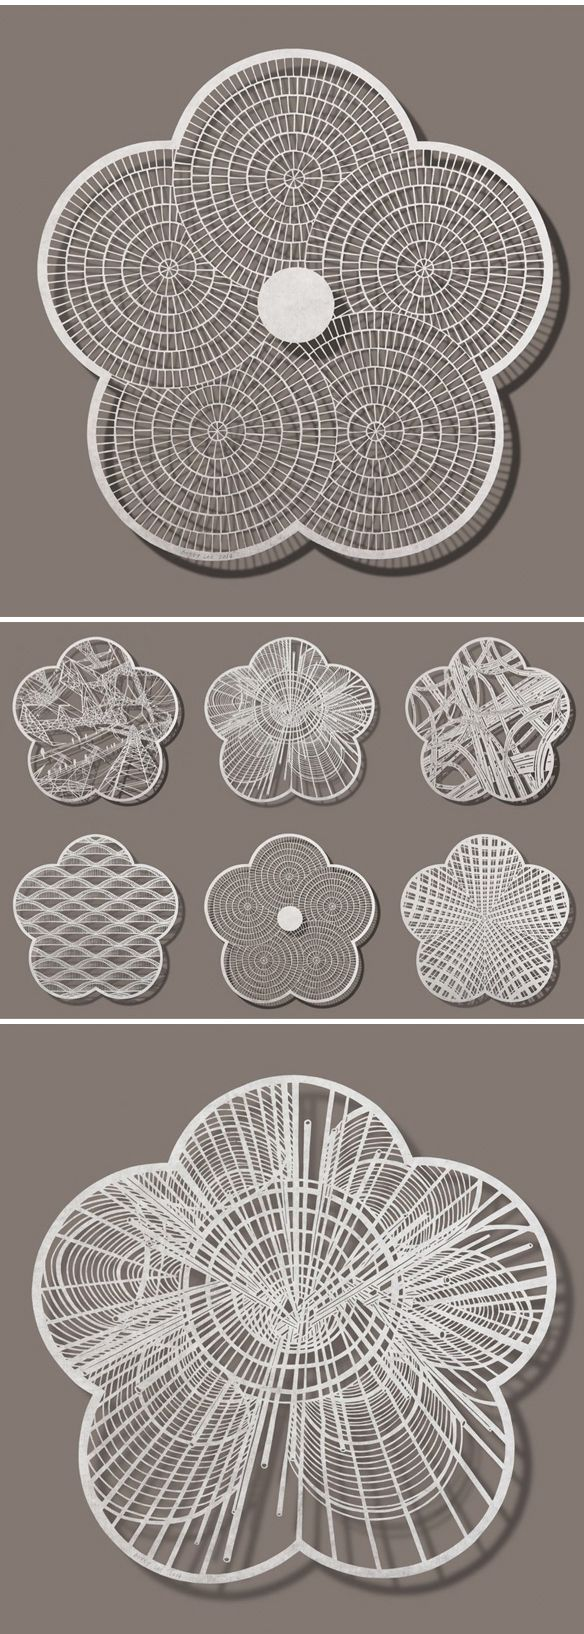 """bovey lee - cut paper from the """"plum blossom"""" series (pavers and rebar + a series overview)"""